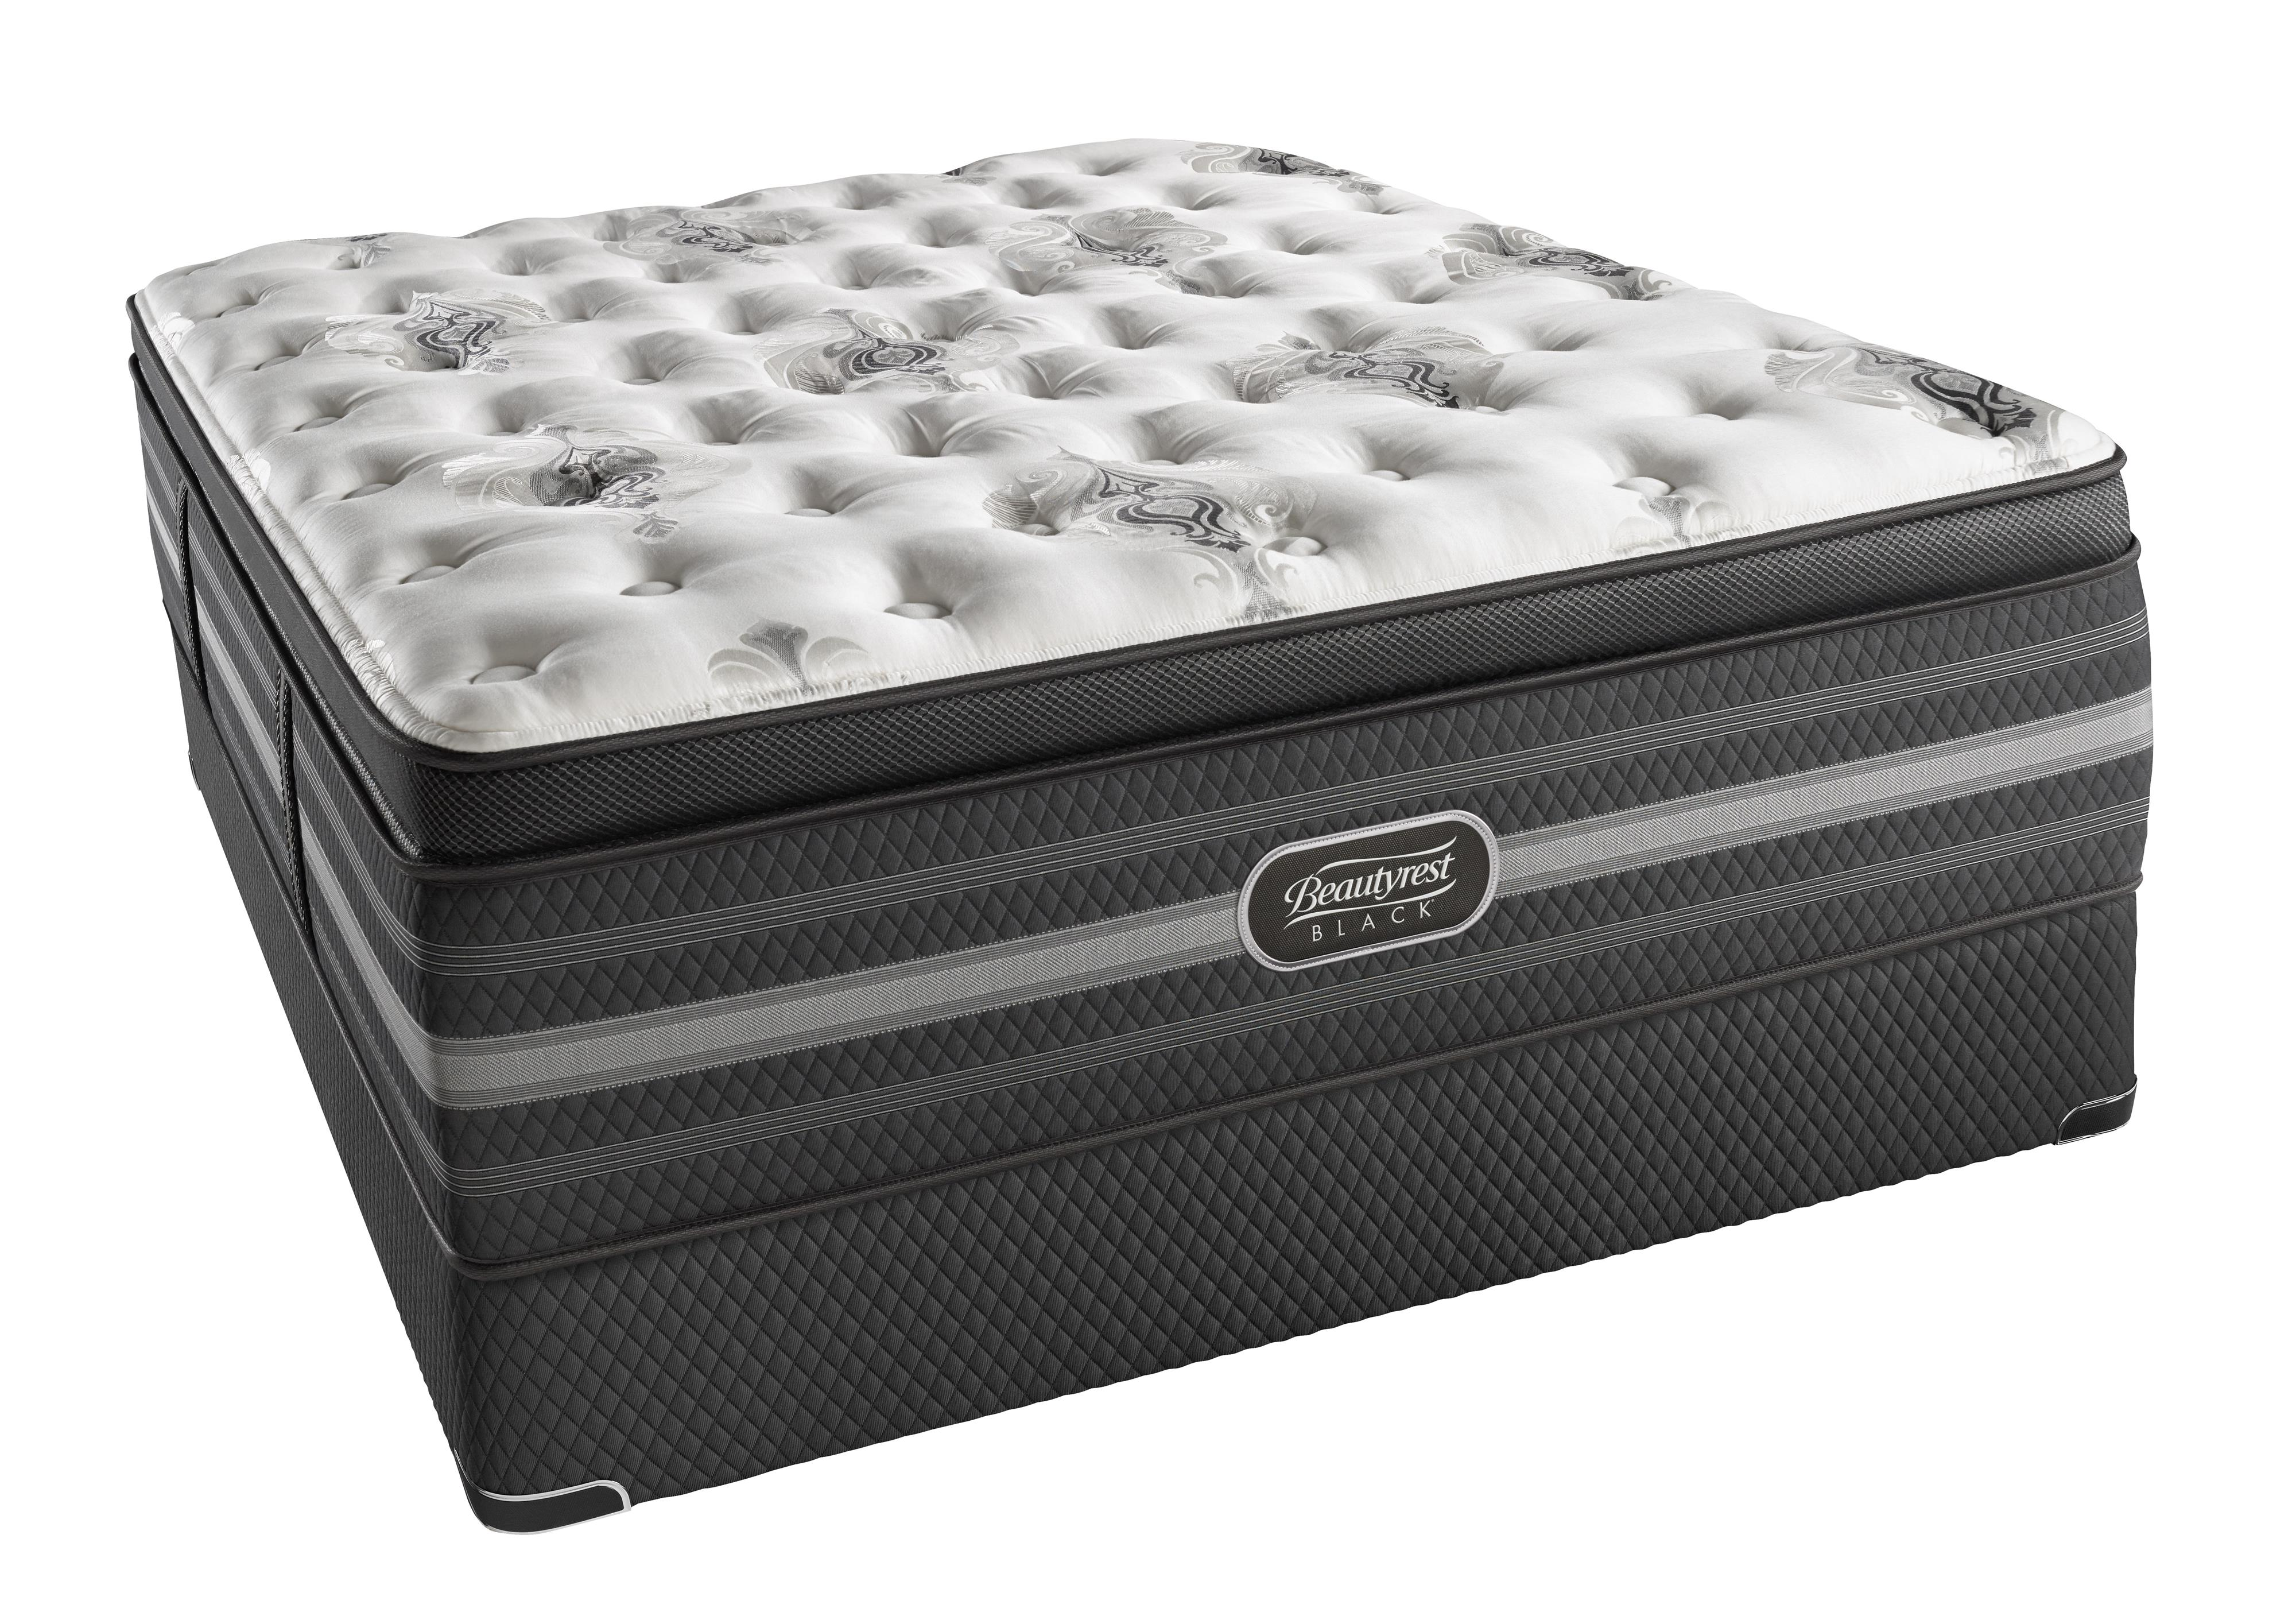 Simmons BR Black Tatiana Qeen Ultra Plush P.T. Mattress Set, Adj - Item Number: BRBULTRAPLPT-Q+SM2-Q